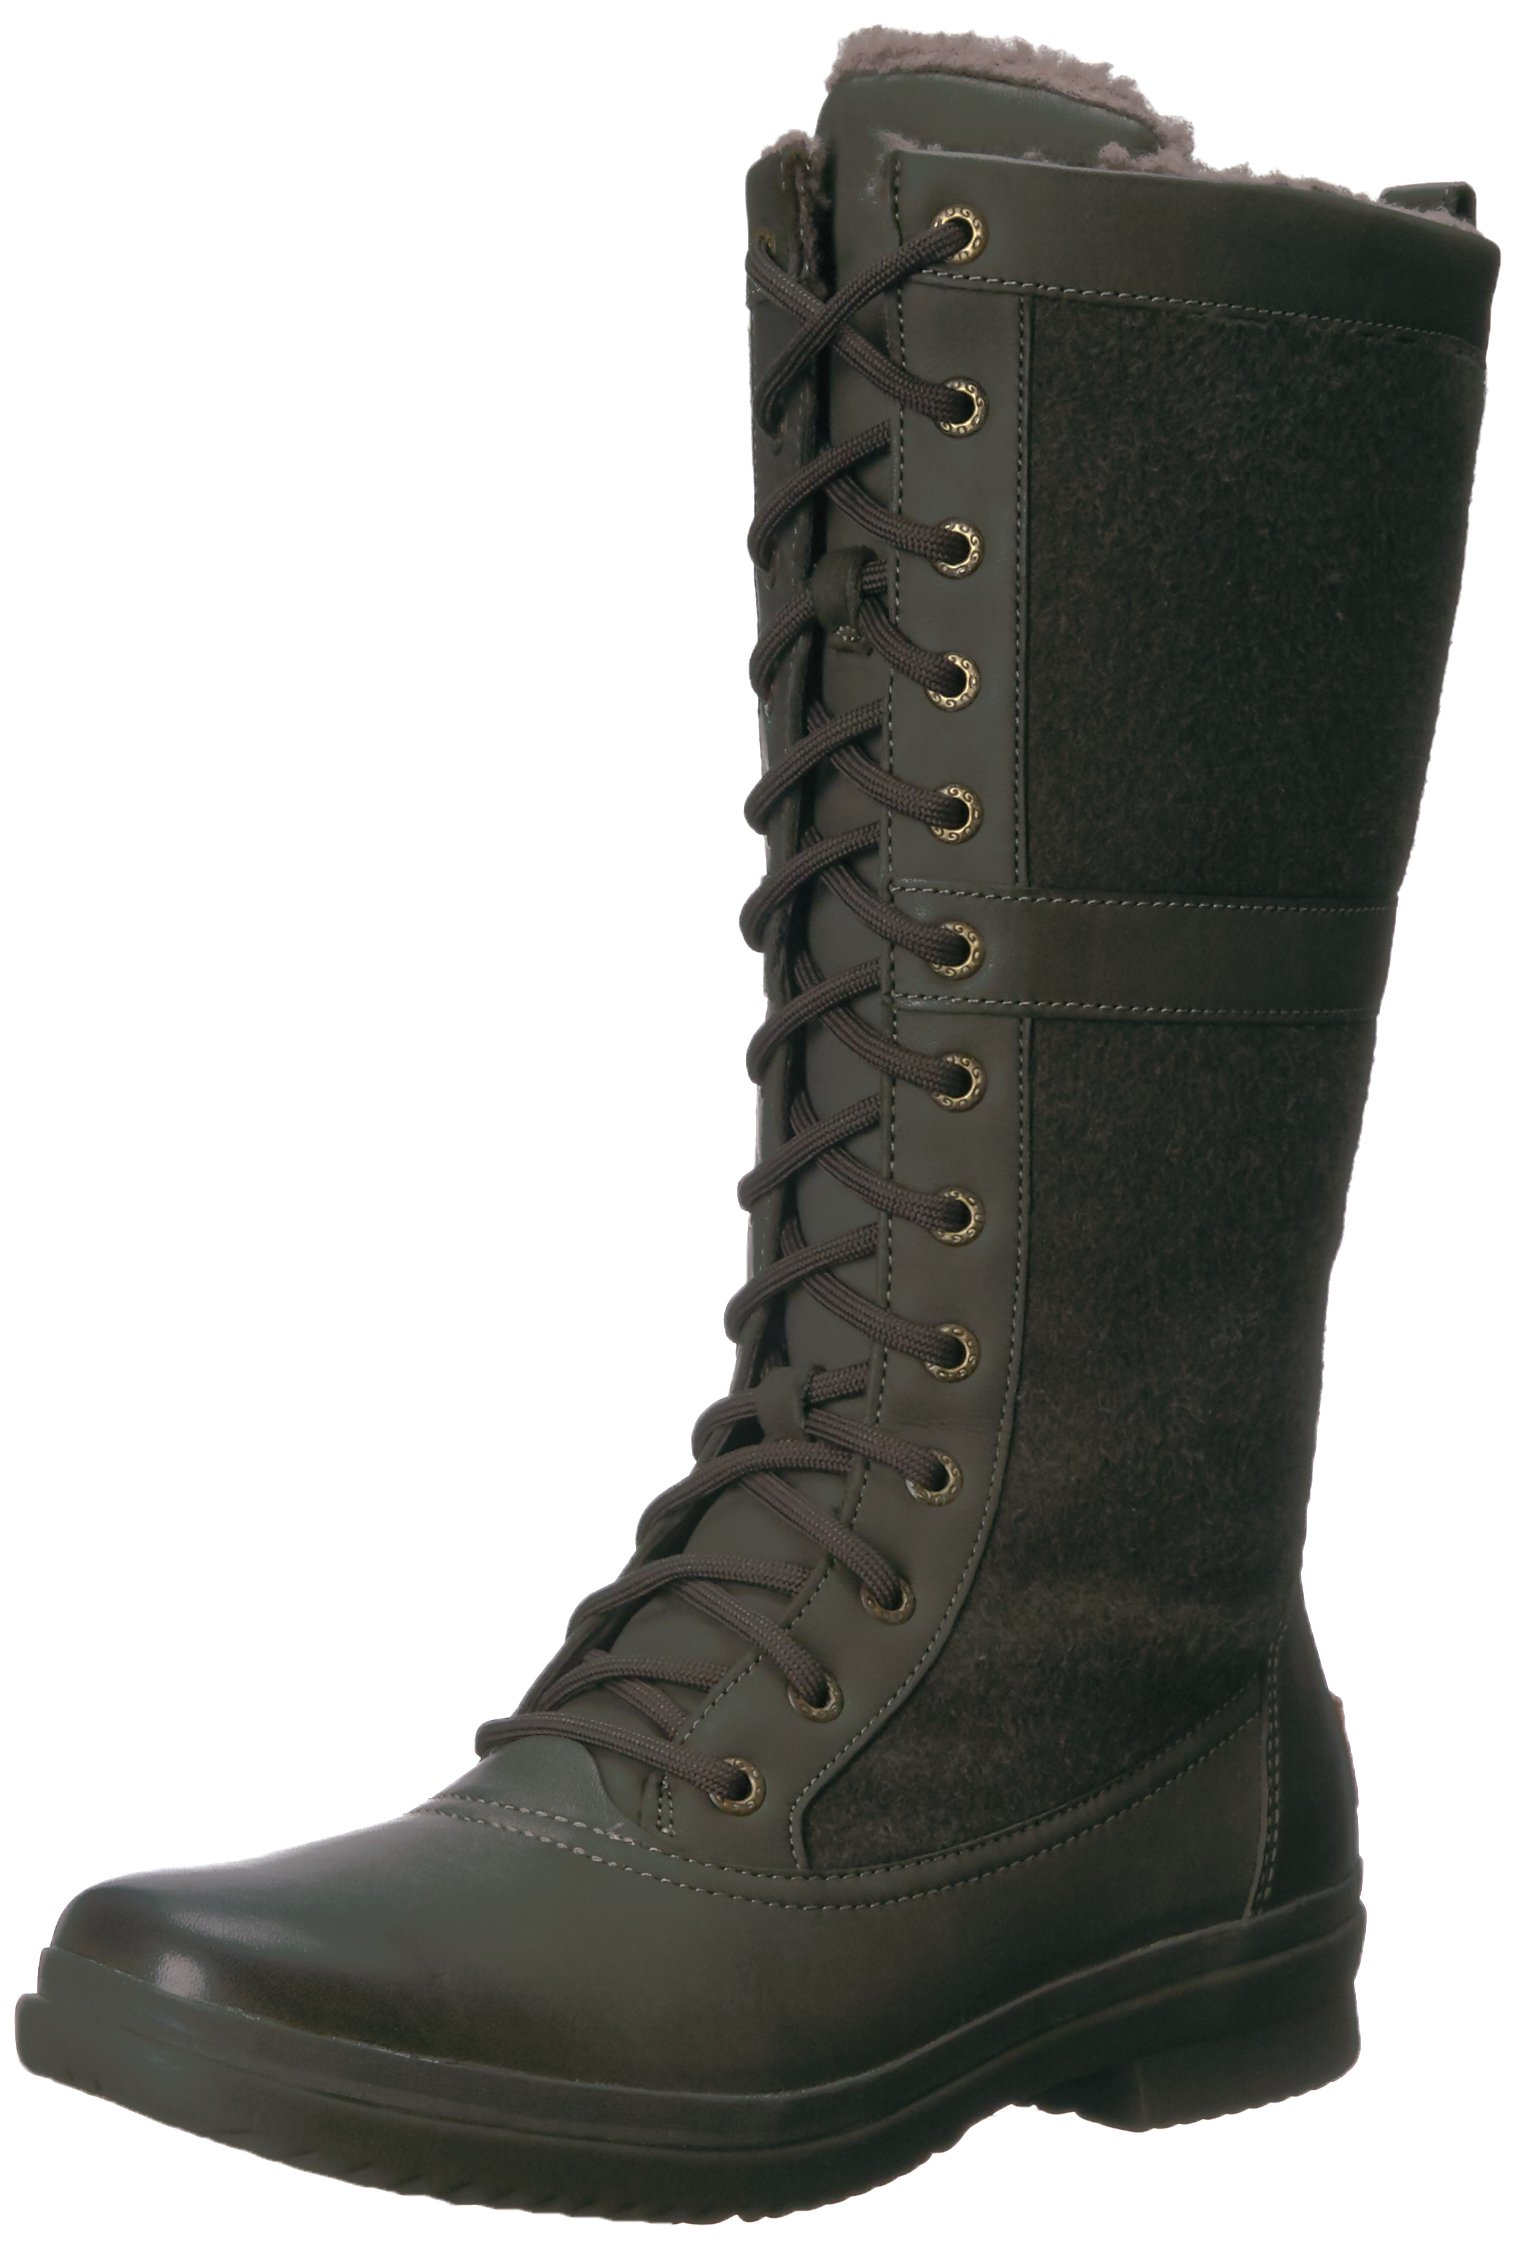 UGG Women's Elvia Boot, Slate, 9.5 M US